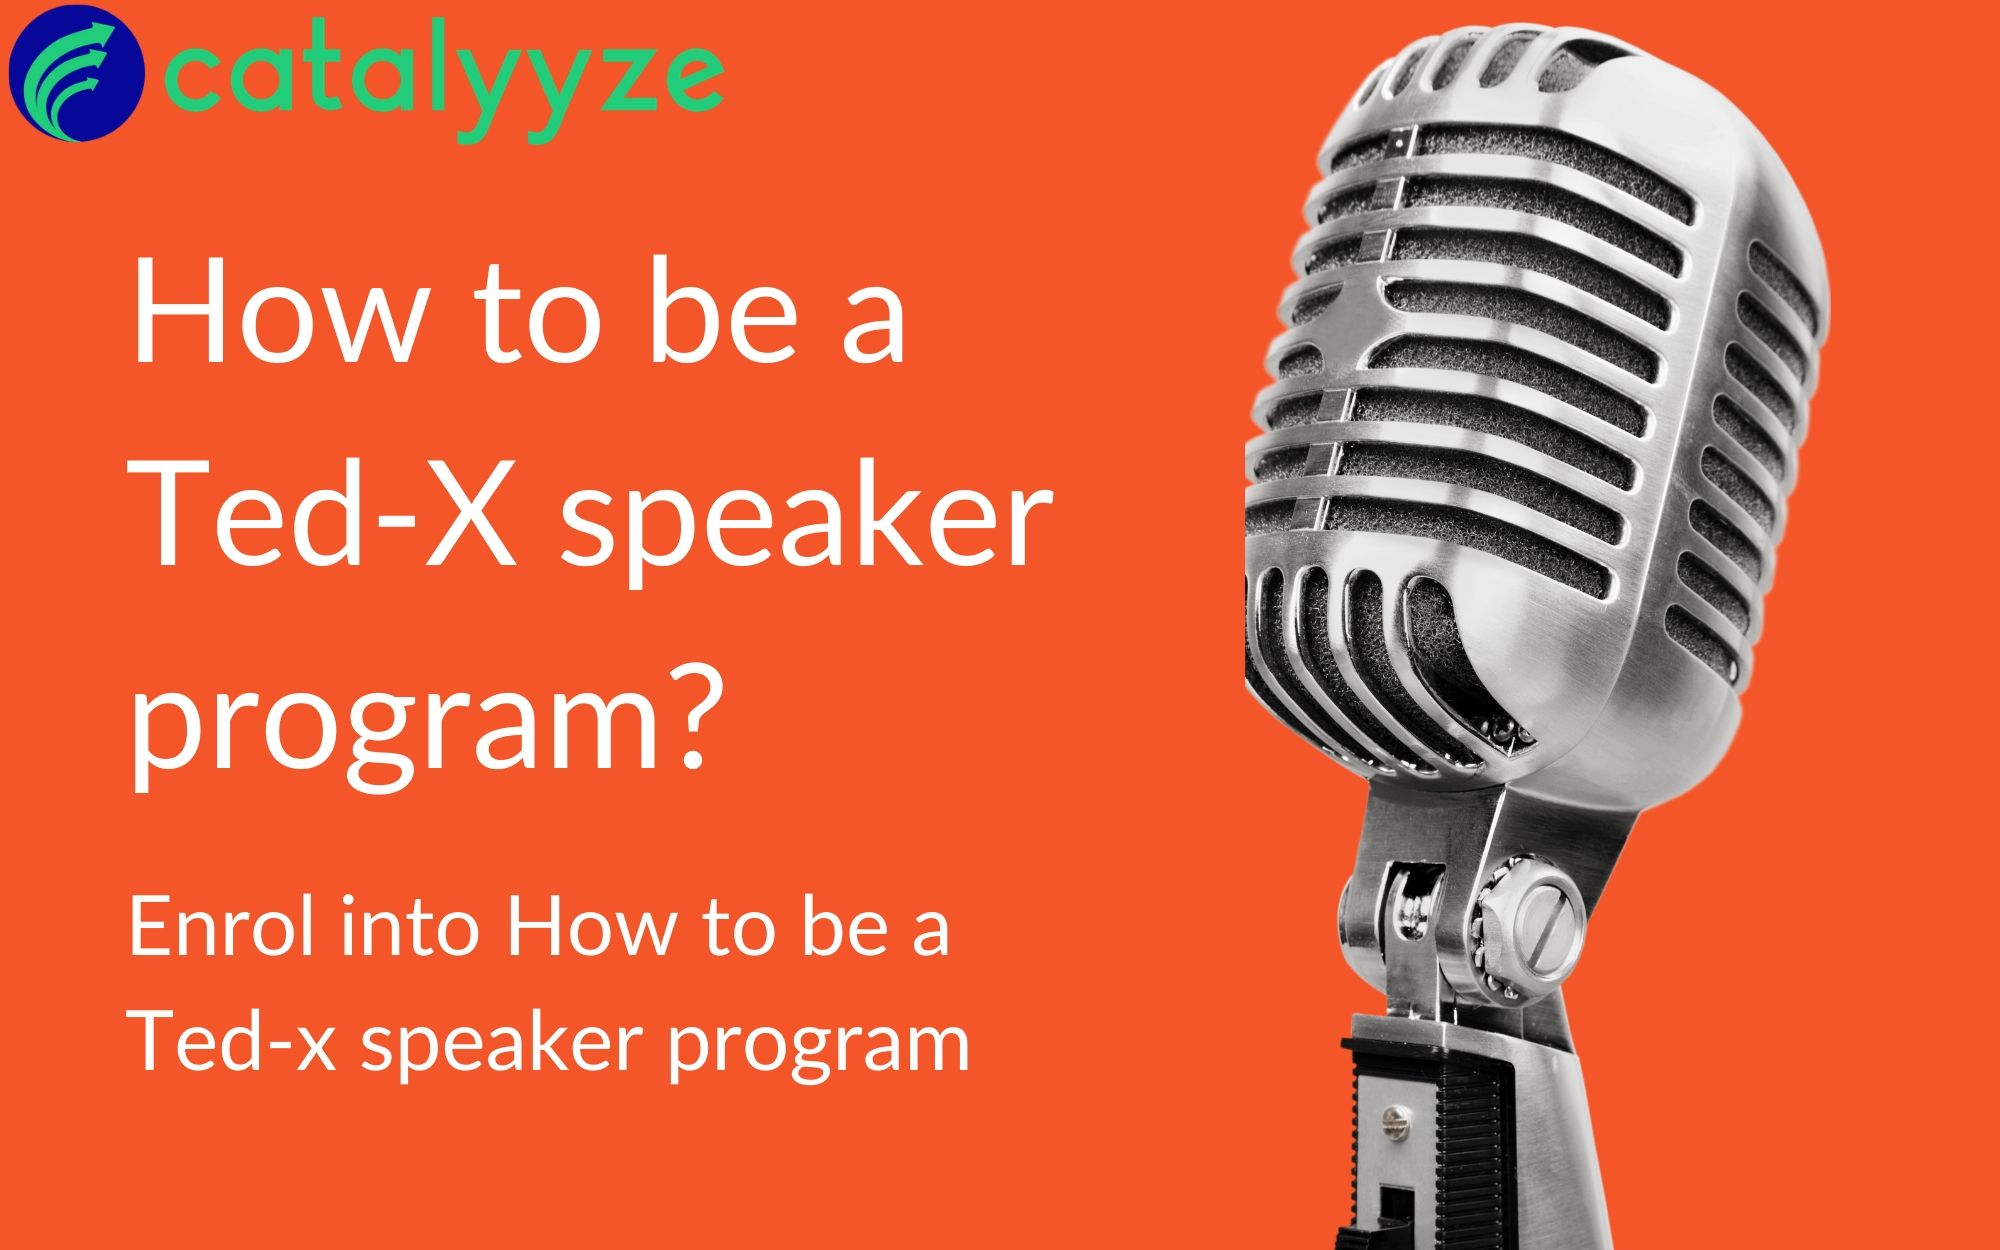 How to be a Ted-x speaker program